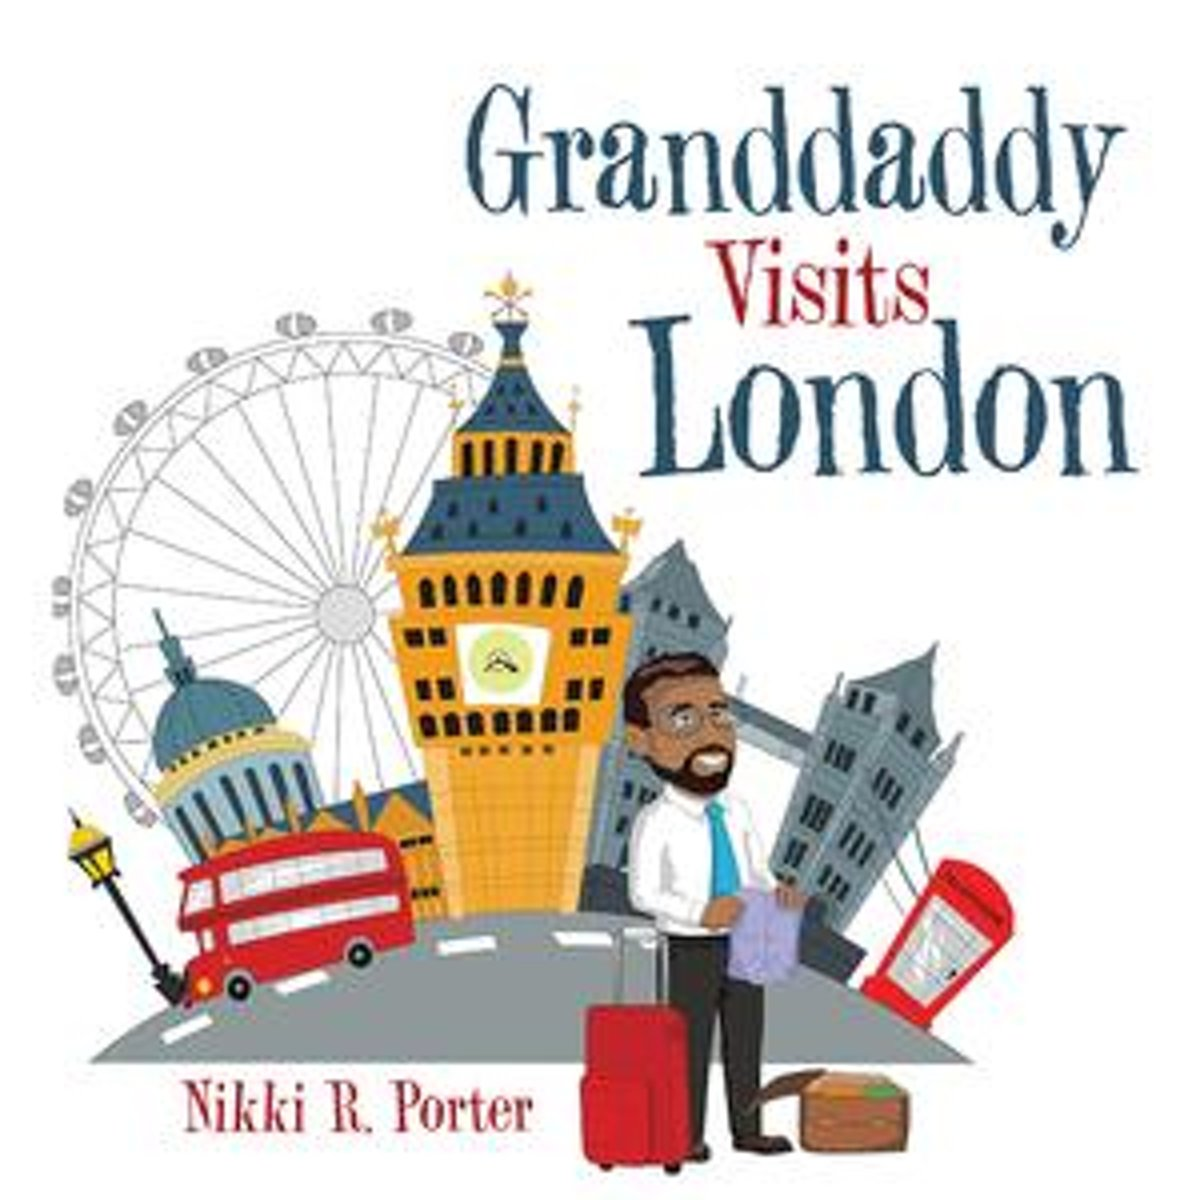 Granddaddy Visits London